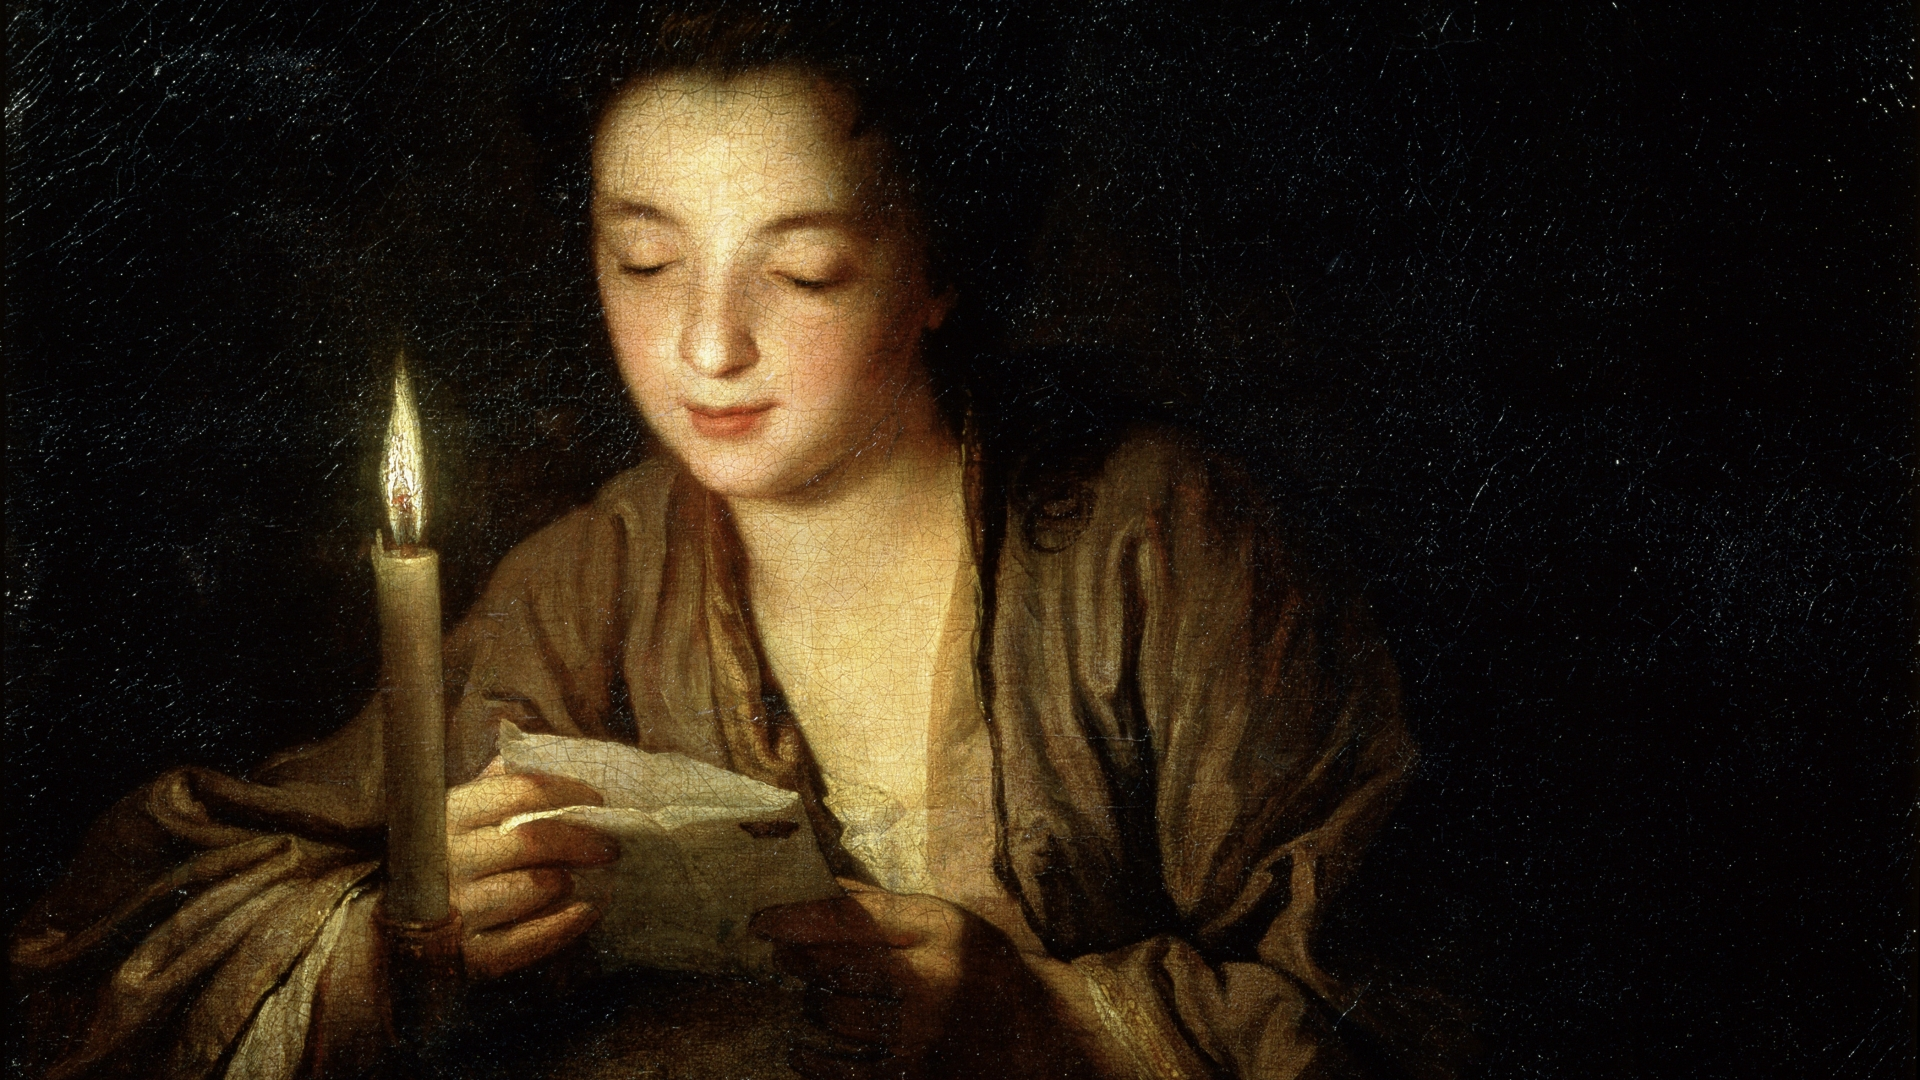 'Girl with a Candle', late 17th century painting in the collection of the State A Pushkin Museum of Fine Arts, Moscow. (Credit: Fine Art Images/Heritage Images/Getty Images)